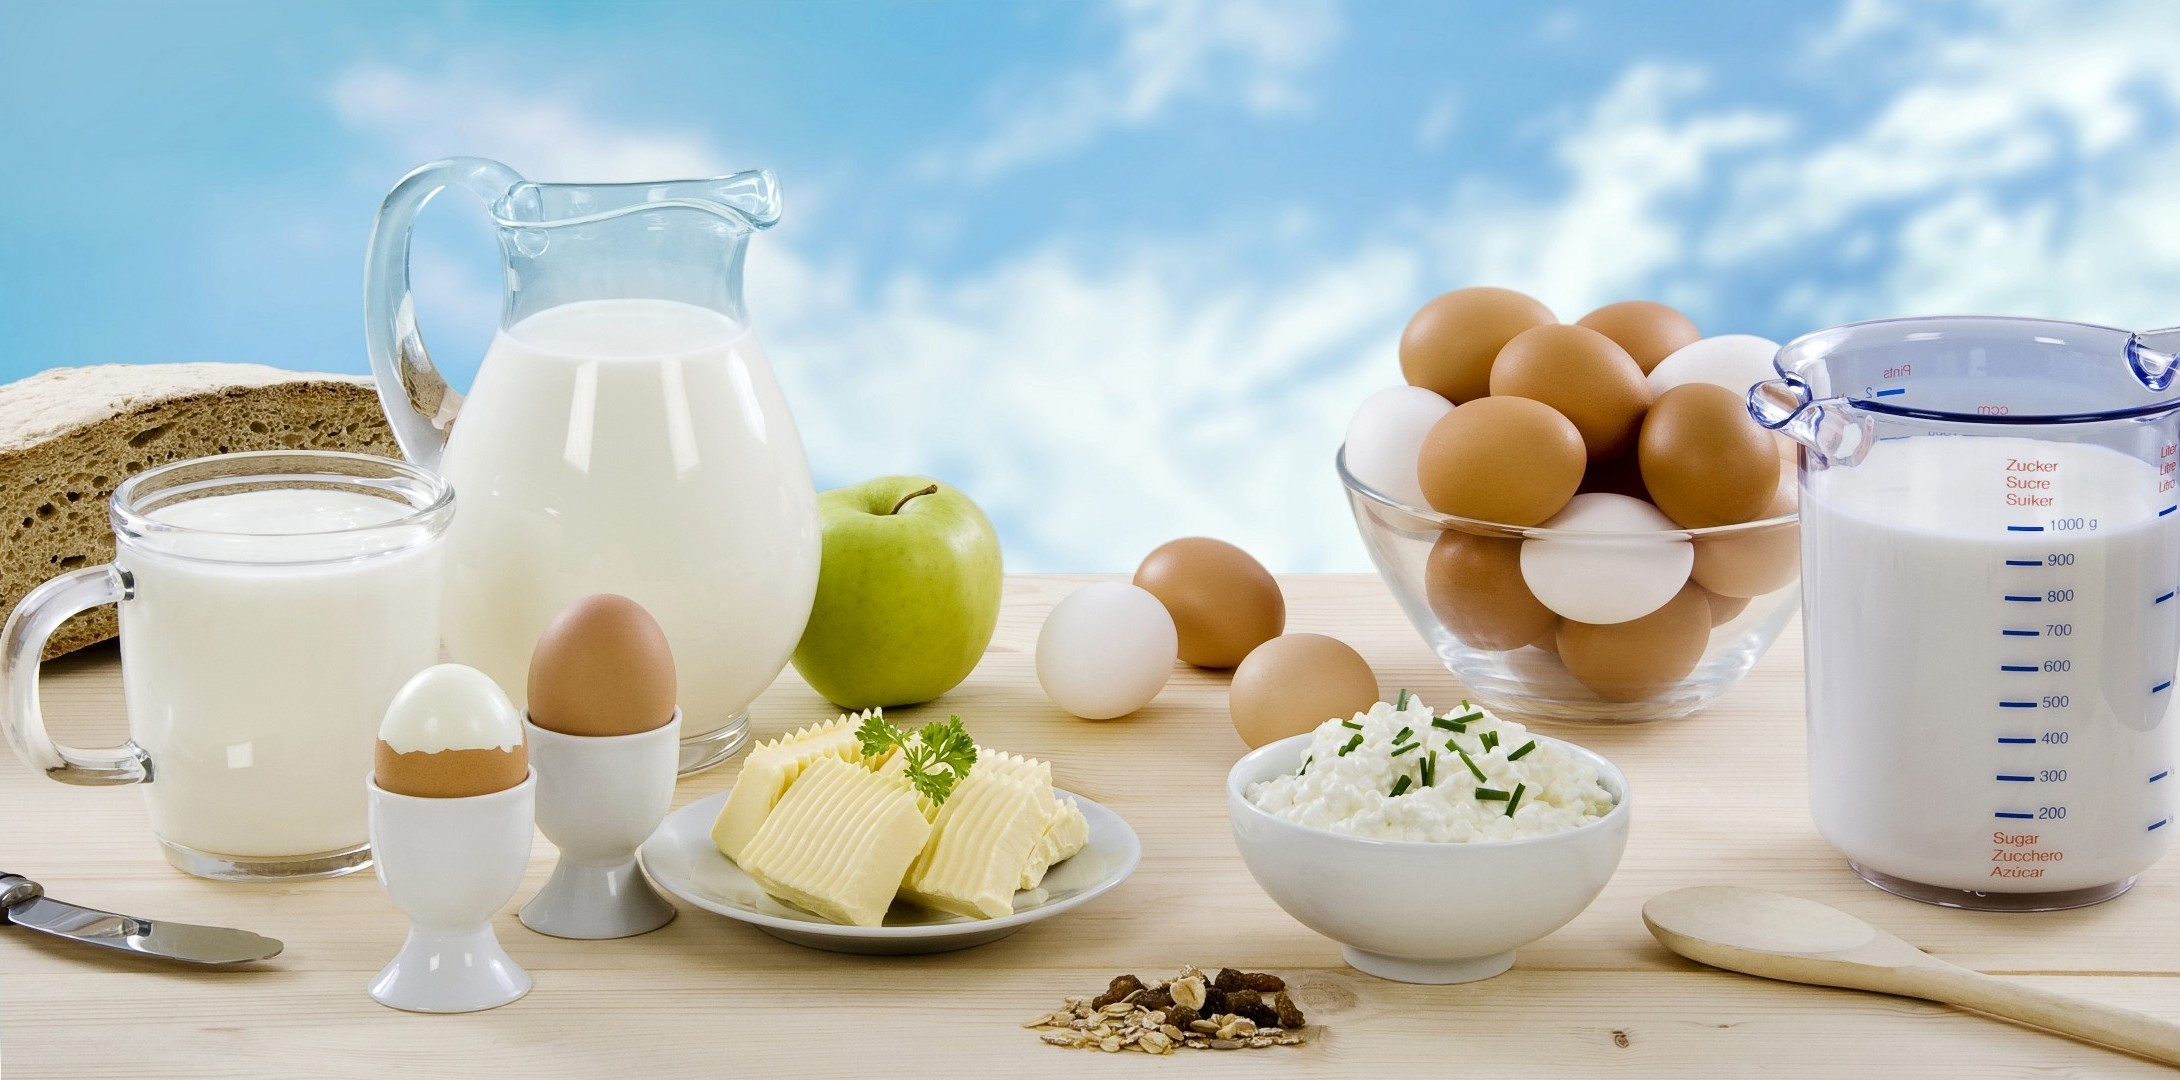 breakfast milk food egg glass table healthy